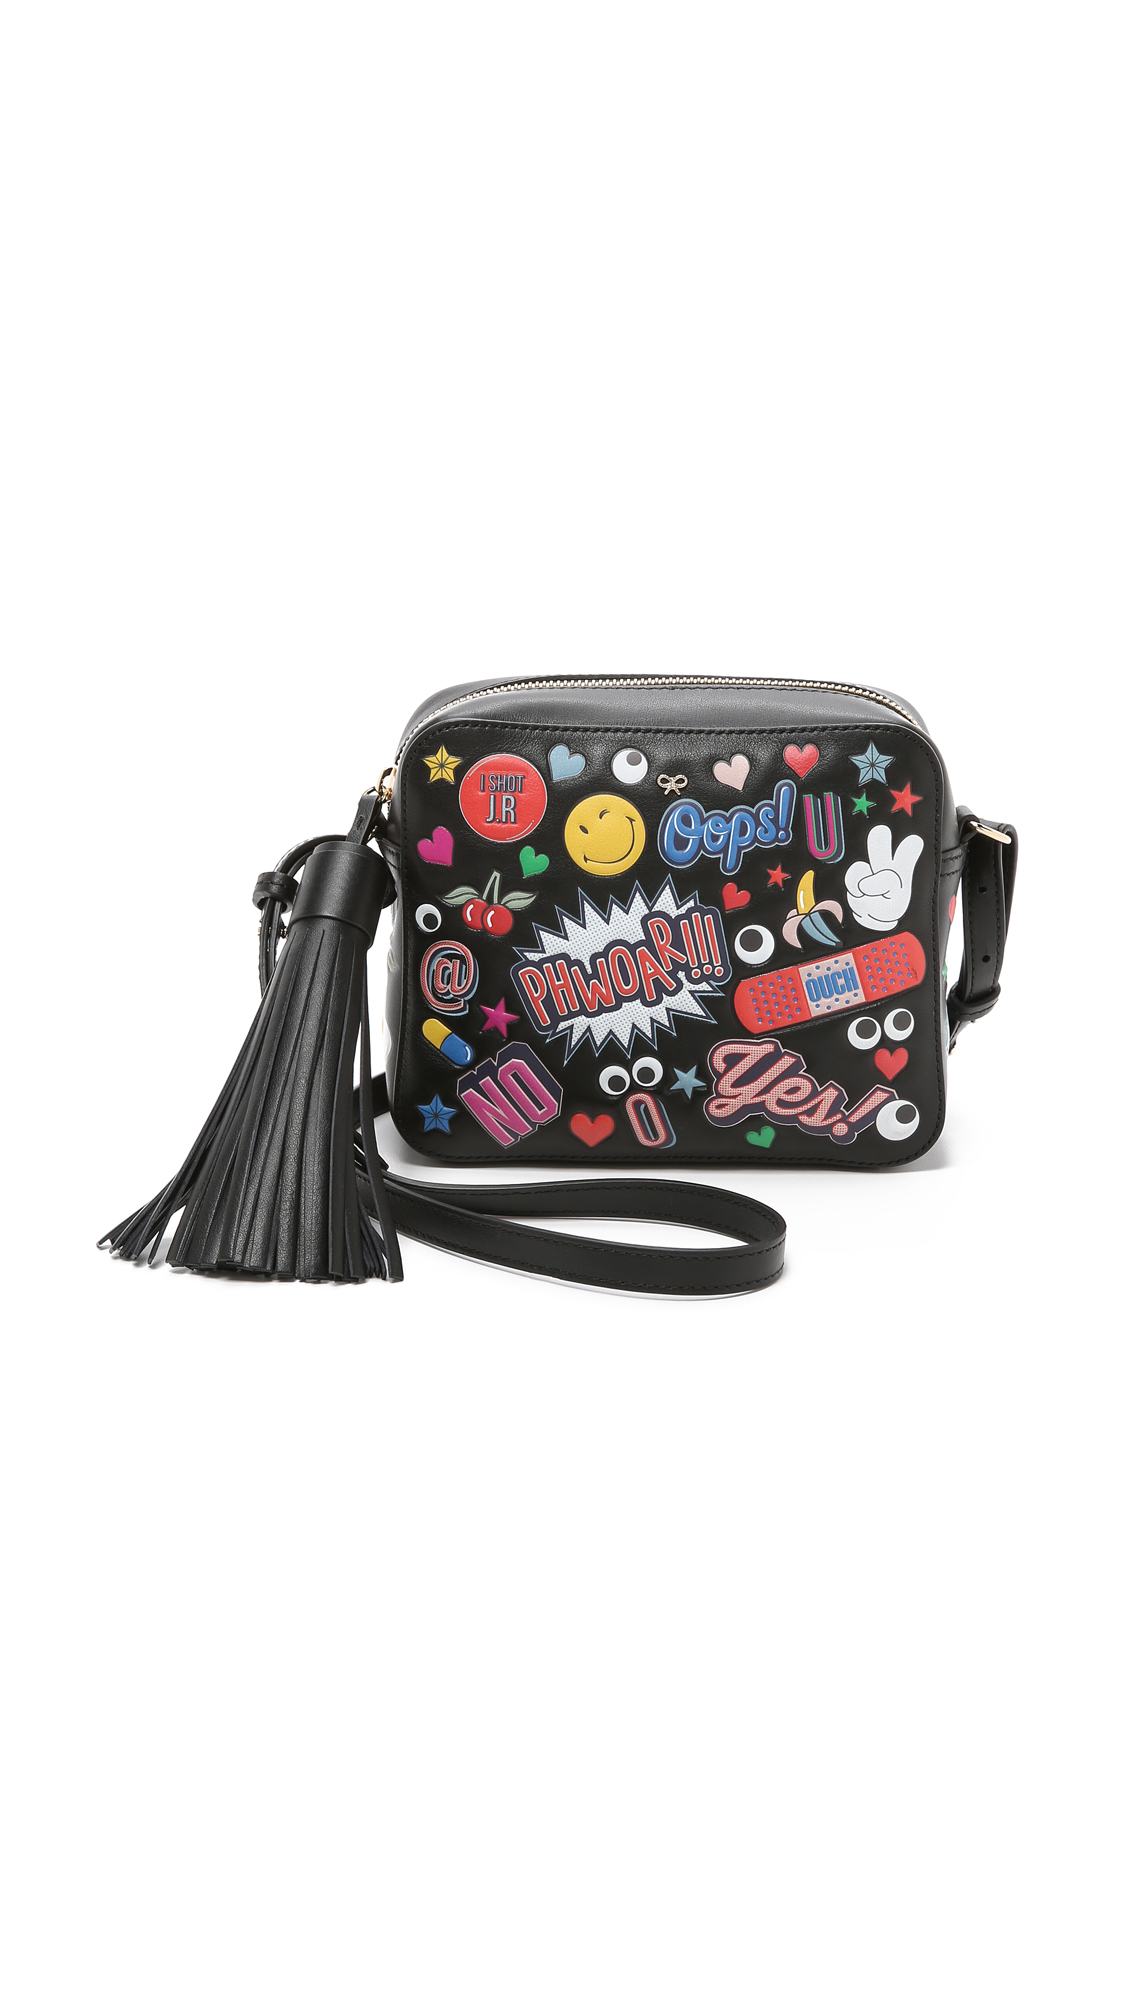 ANYA HINDMARCH Crossbody All Over Wink Stickers Bag In Black Circus Leather at Shopbop